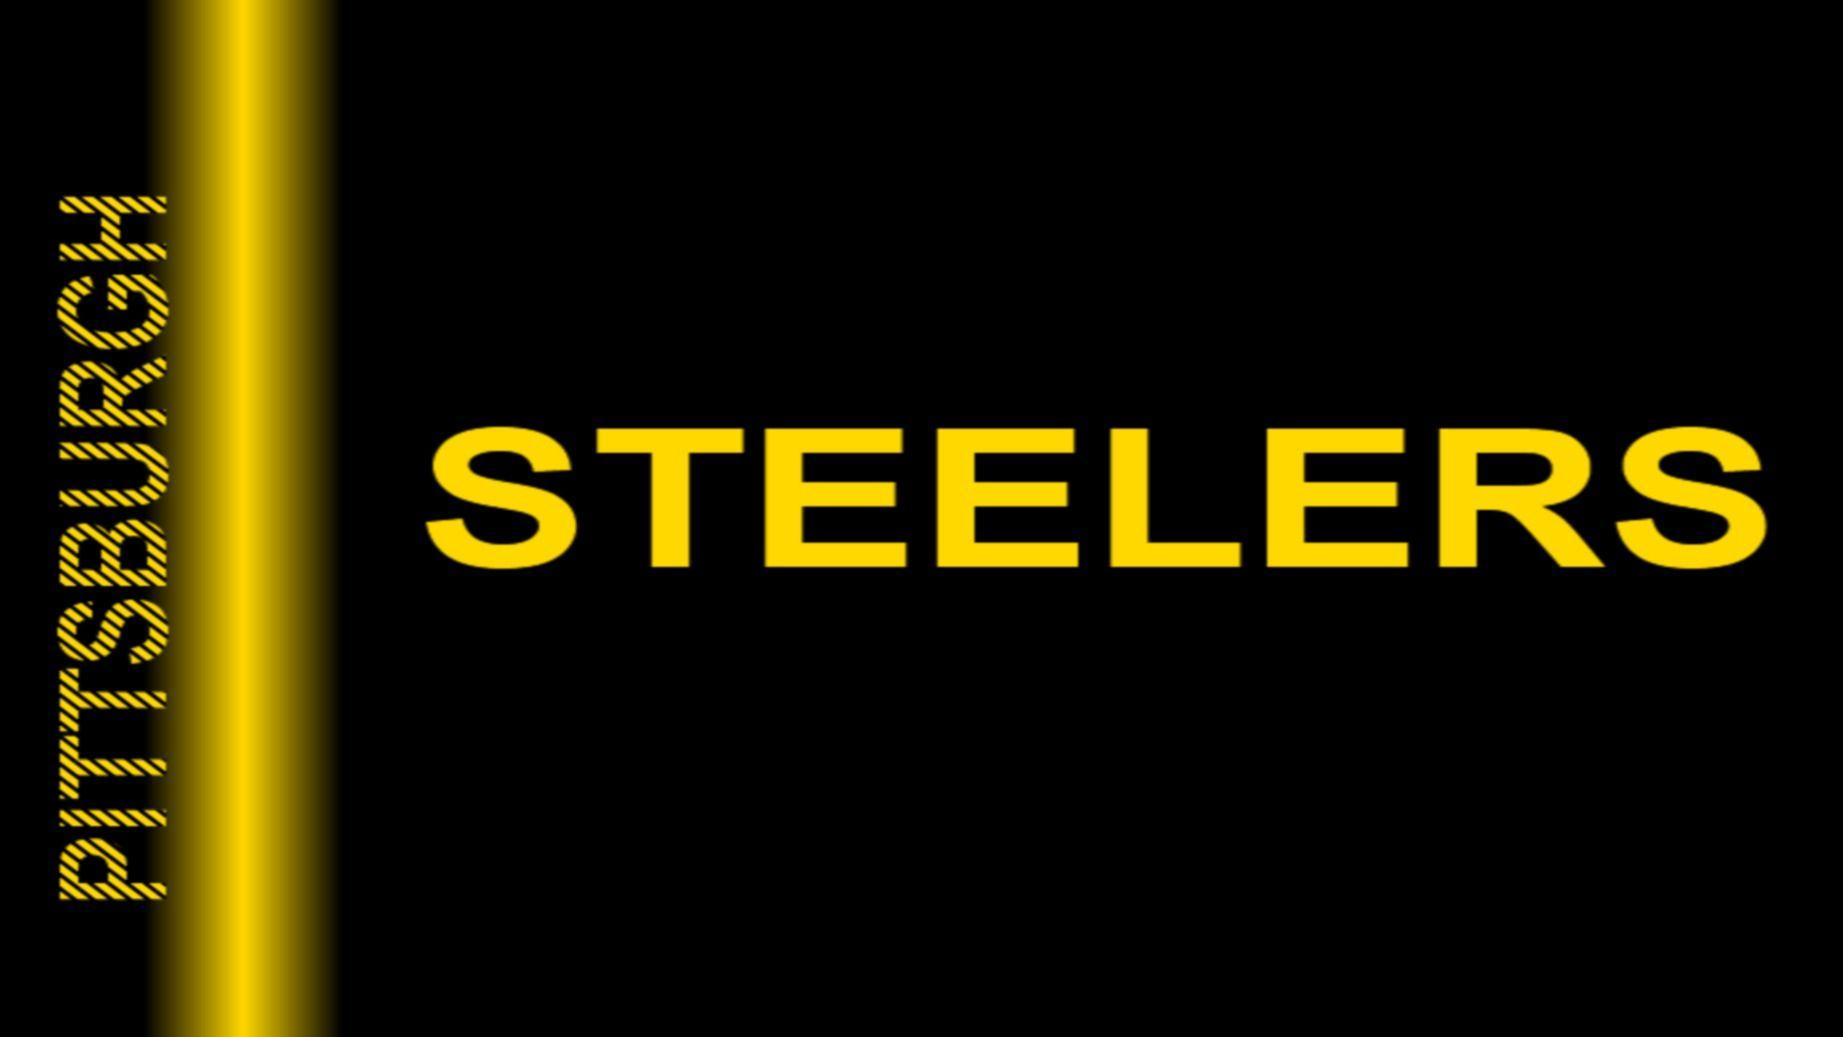 Pittsburgh Steelers Logo Wallpaper: Pittsburgh Steelers Backgrounds